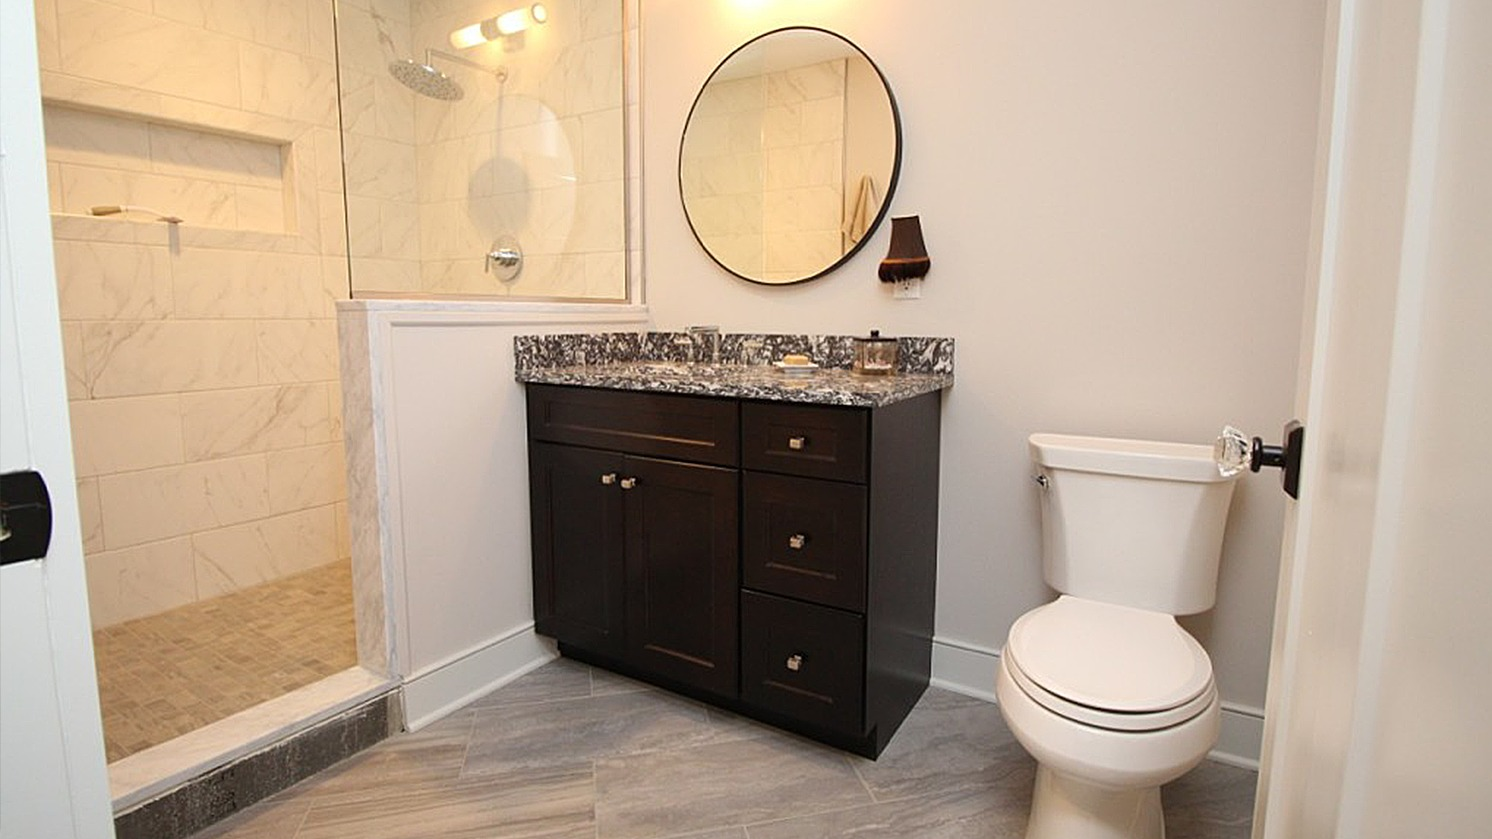 Kitchen Bath Design Schenectady NY Chas G Burch Supply Co - Bathroom remodeling schenectady ny